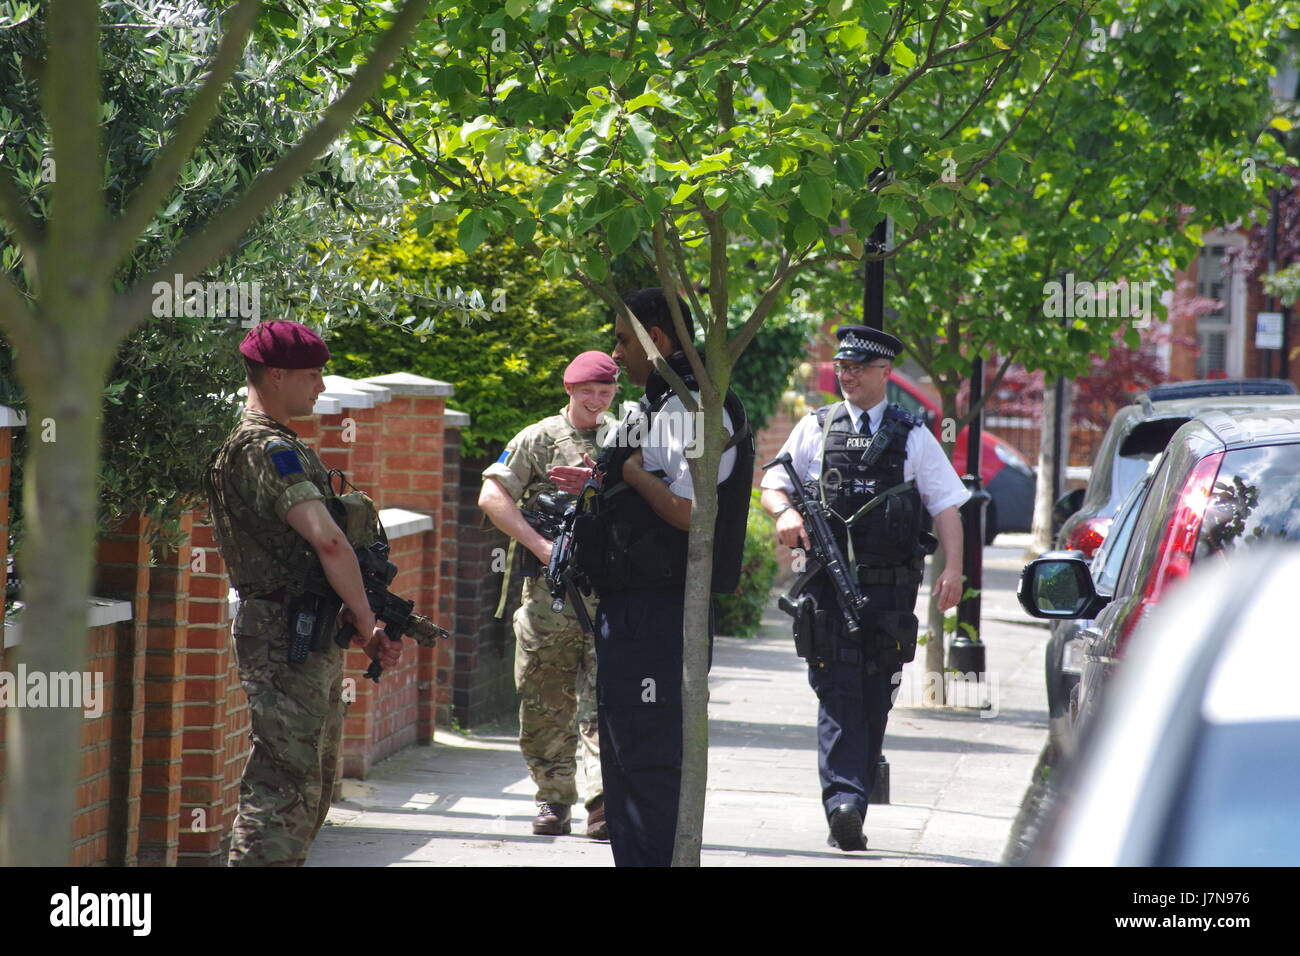 London, United Kingdom. 25th May, 2015.Heavily armed military personnel and armed police guard London streets, United - Stock Image